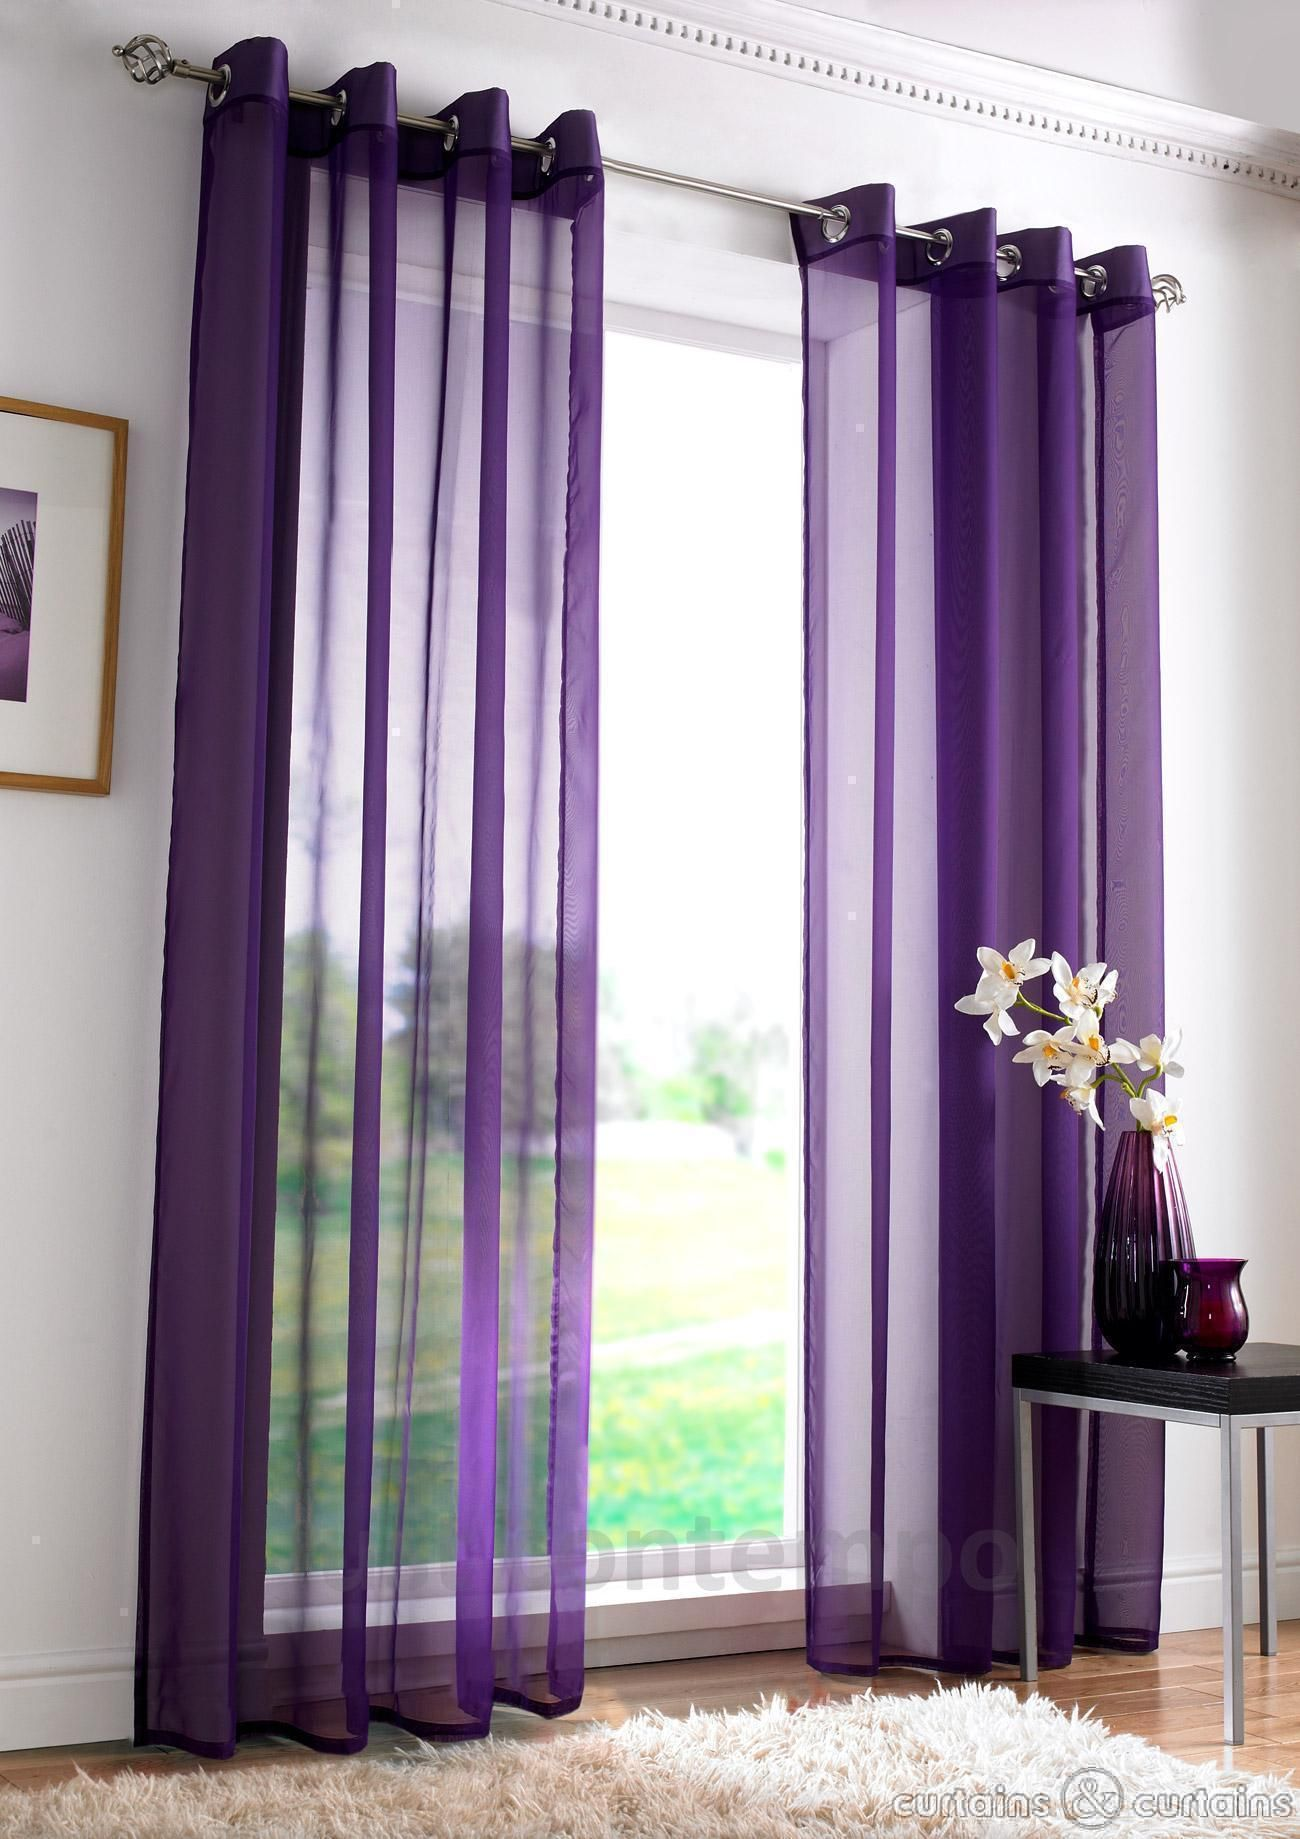 Sheer Purple Drapes Which Cover The Windows Flutter In The